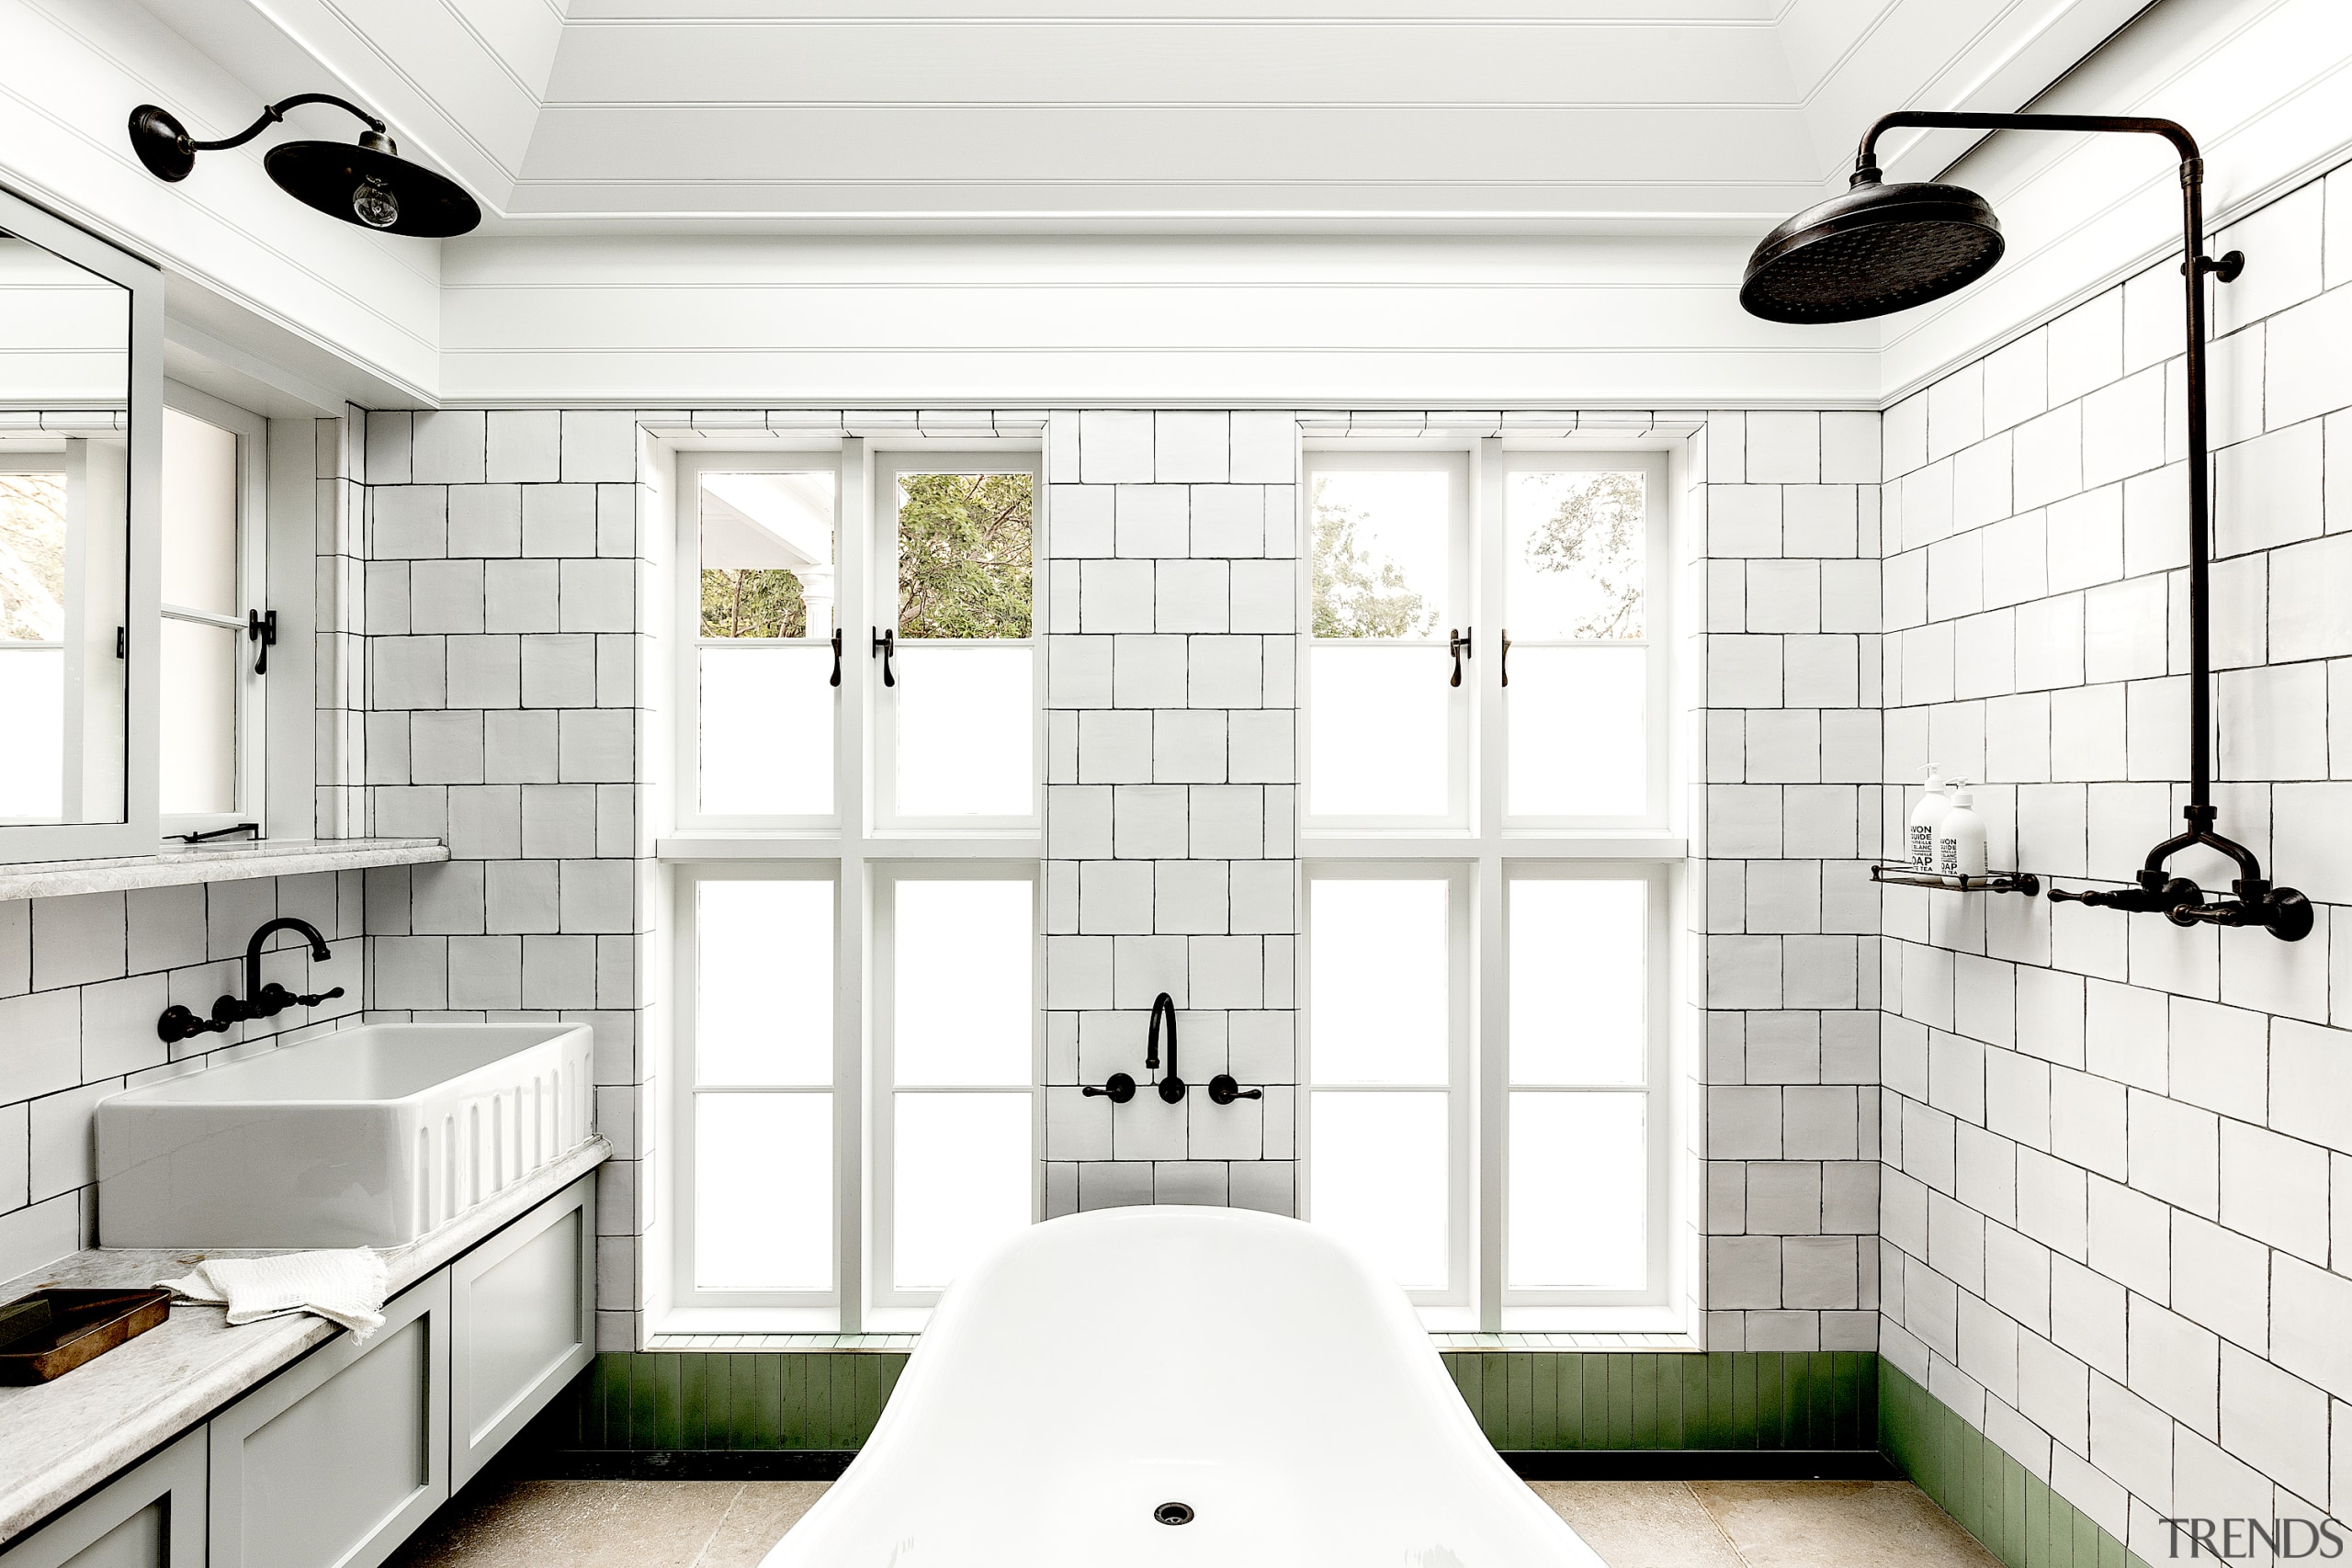 The family bathroom was designed as an abstract white